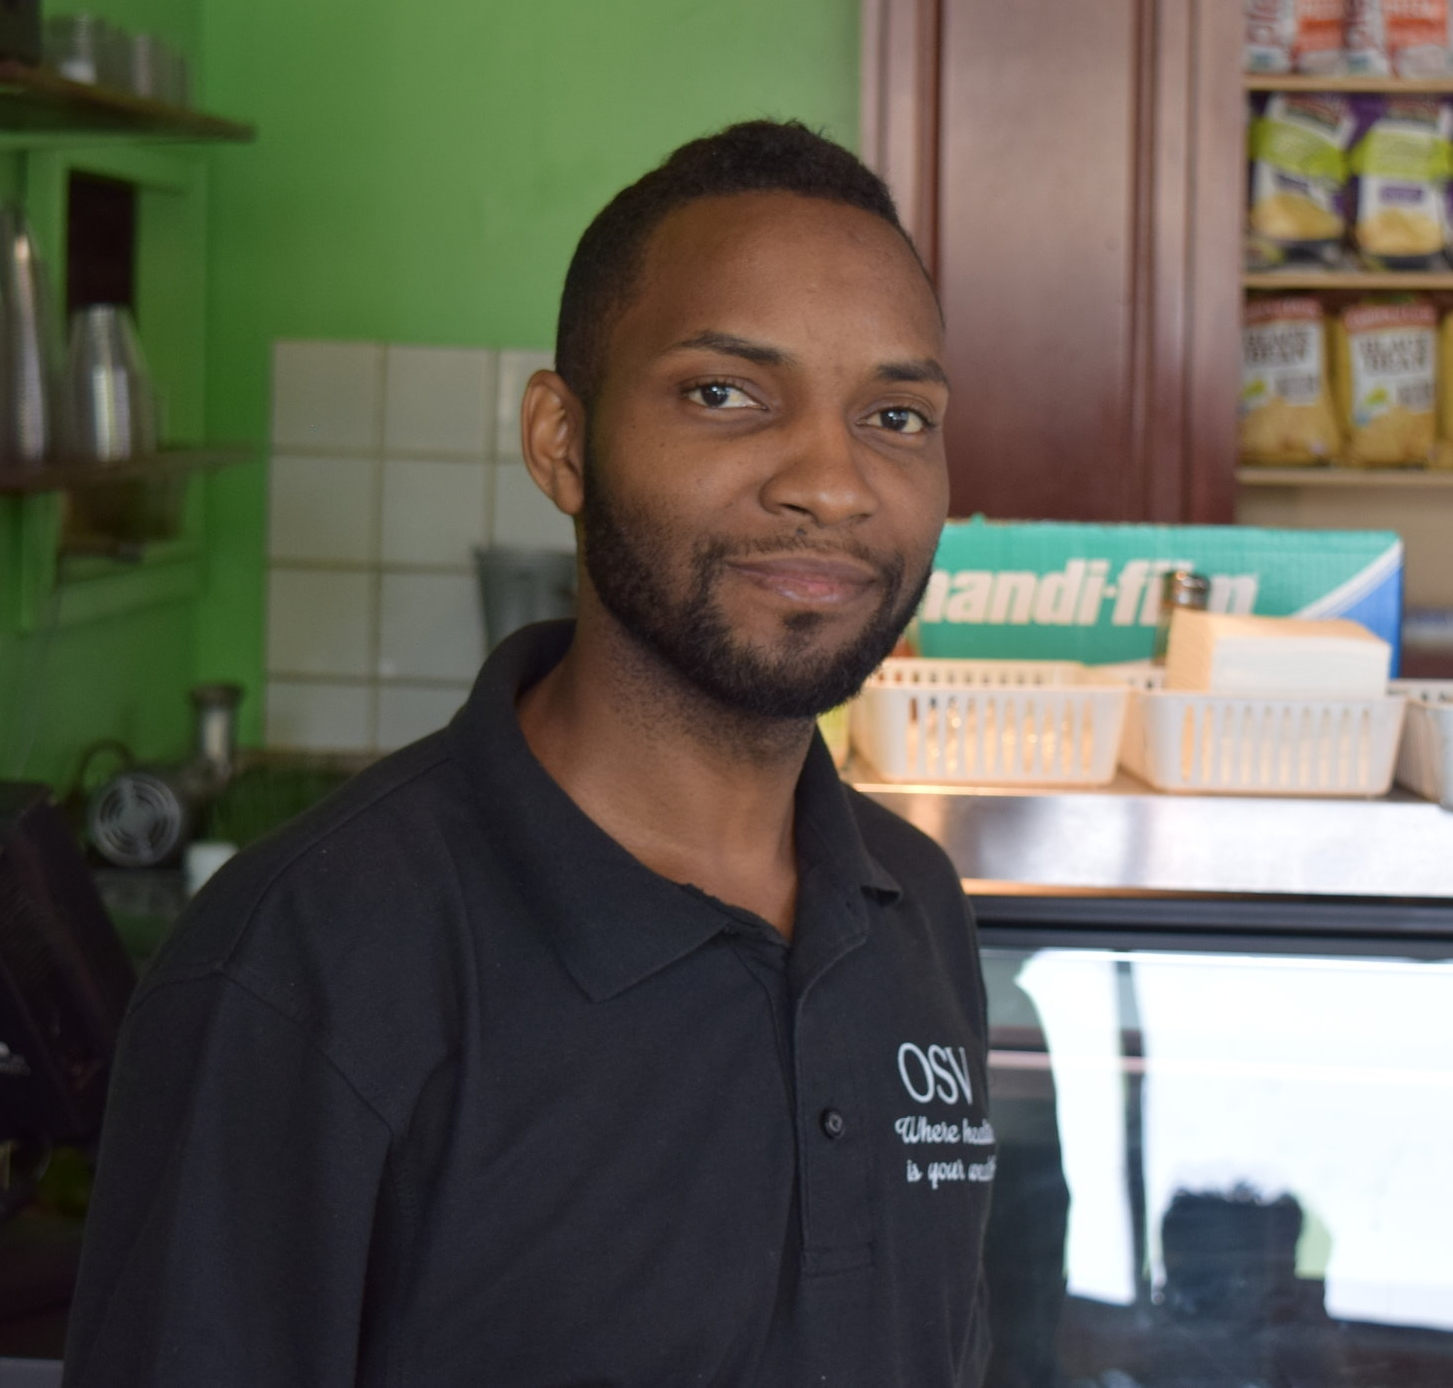 "Arel Ben Israel     Owner, Original Soul Vegetarian        "" We've been here for 35 years now.  My dad opened this business because he realized that most of the illnesses that existed, whether its high blood pressure, diabetes, strokes, stress, high cholesterol, the African-American community was attacked by them the highest.  Because he changed his eating habits fifty plus years ago, he realized that some things changed within his own body.  So, he came up with the concept of a vegetarian restaurant.  He went from eating a traditional American diet, which was everything, to saying, 'Let me challenge myself to a new way of eating'…Since then, we've just been developing and expanding in the vegan food industry.  We're the first vegan restaurant in the Midwest.  We took what most people liked in the American diet, whether it was hamburgers, gyros, BBQ, and we made it all vegan…On a local standpoint, we don't have as many options as we should, to be extremely honest, in the Black community.  That's why they came up with the whole idea of food deserts.  Because they took a snapshot of neighborhoods, and some neighborhoods was better supplied than others.  It just so happened that on the South Side of Chicago we was deprived from fresh food, fresh vegetables, decent places to eat, decent places to go, places you can actually trust the products or the services they bring to the neighborhood, so from that standpoint it's breathtaking.  It's like a glass of fresh water that you're kind of nourishing the community and connecting with people that normally wouldn't even hear about it."""